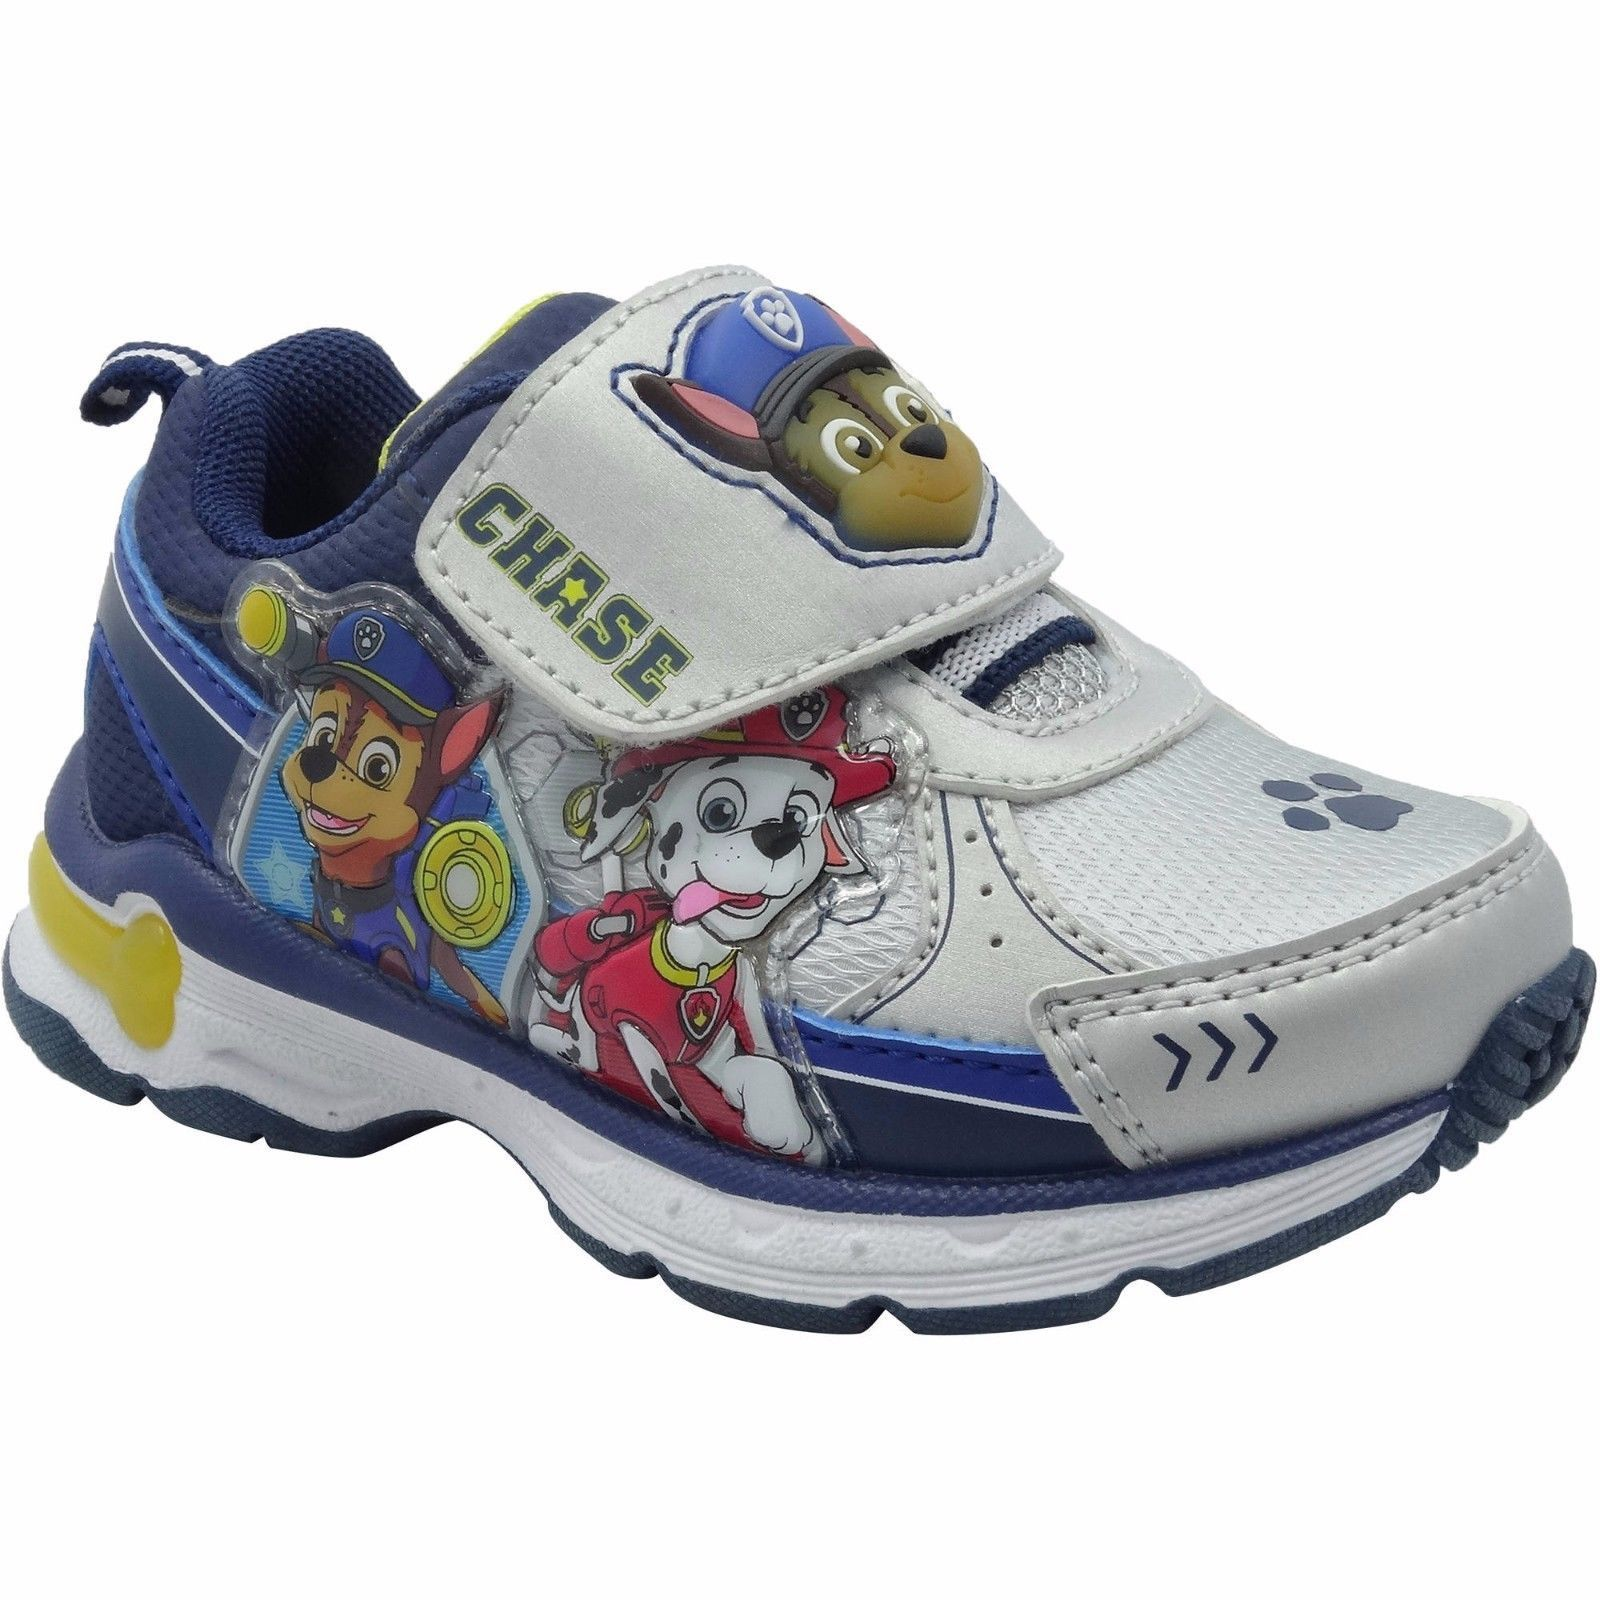 634f145f1485 Paw Patrol Toddler Boys Athletic Shoes